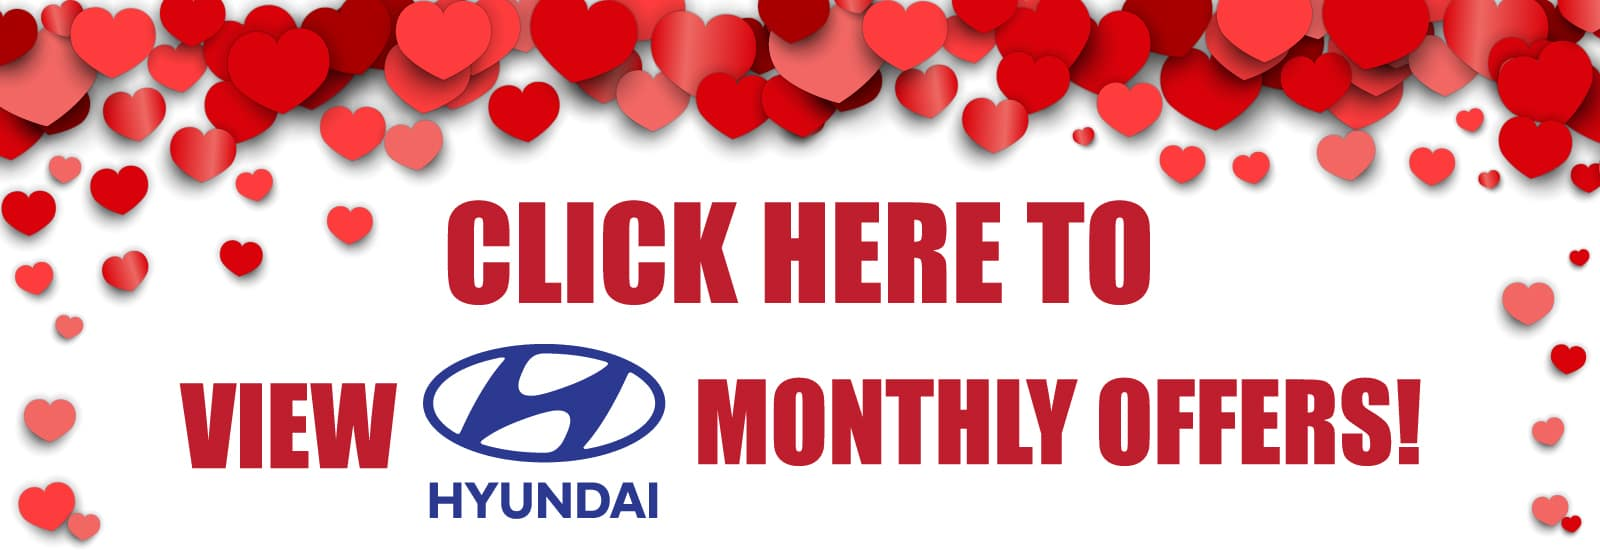 Click-Here-To-View-Hyundai-Monthly-Offers-Web-Banner-1600×500